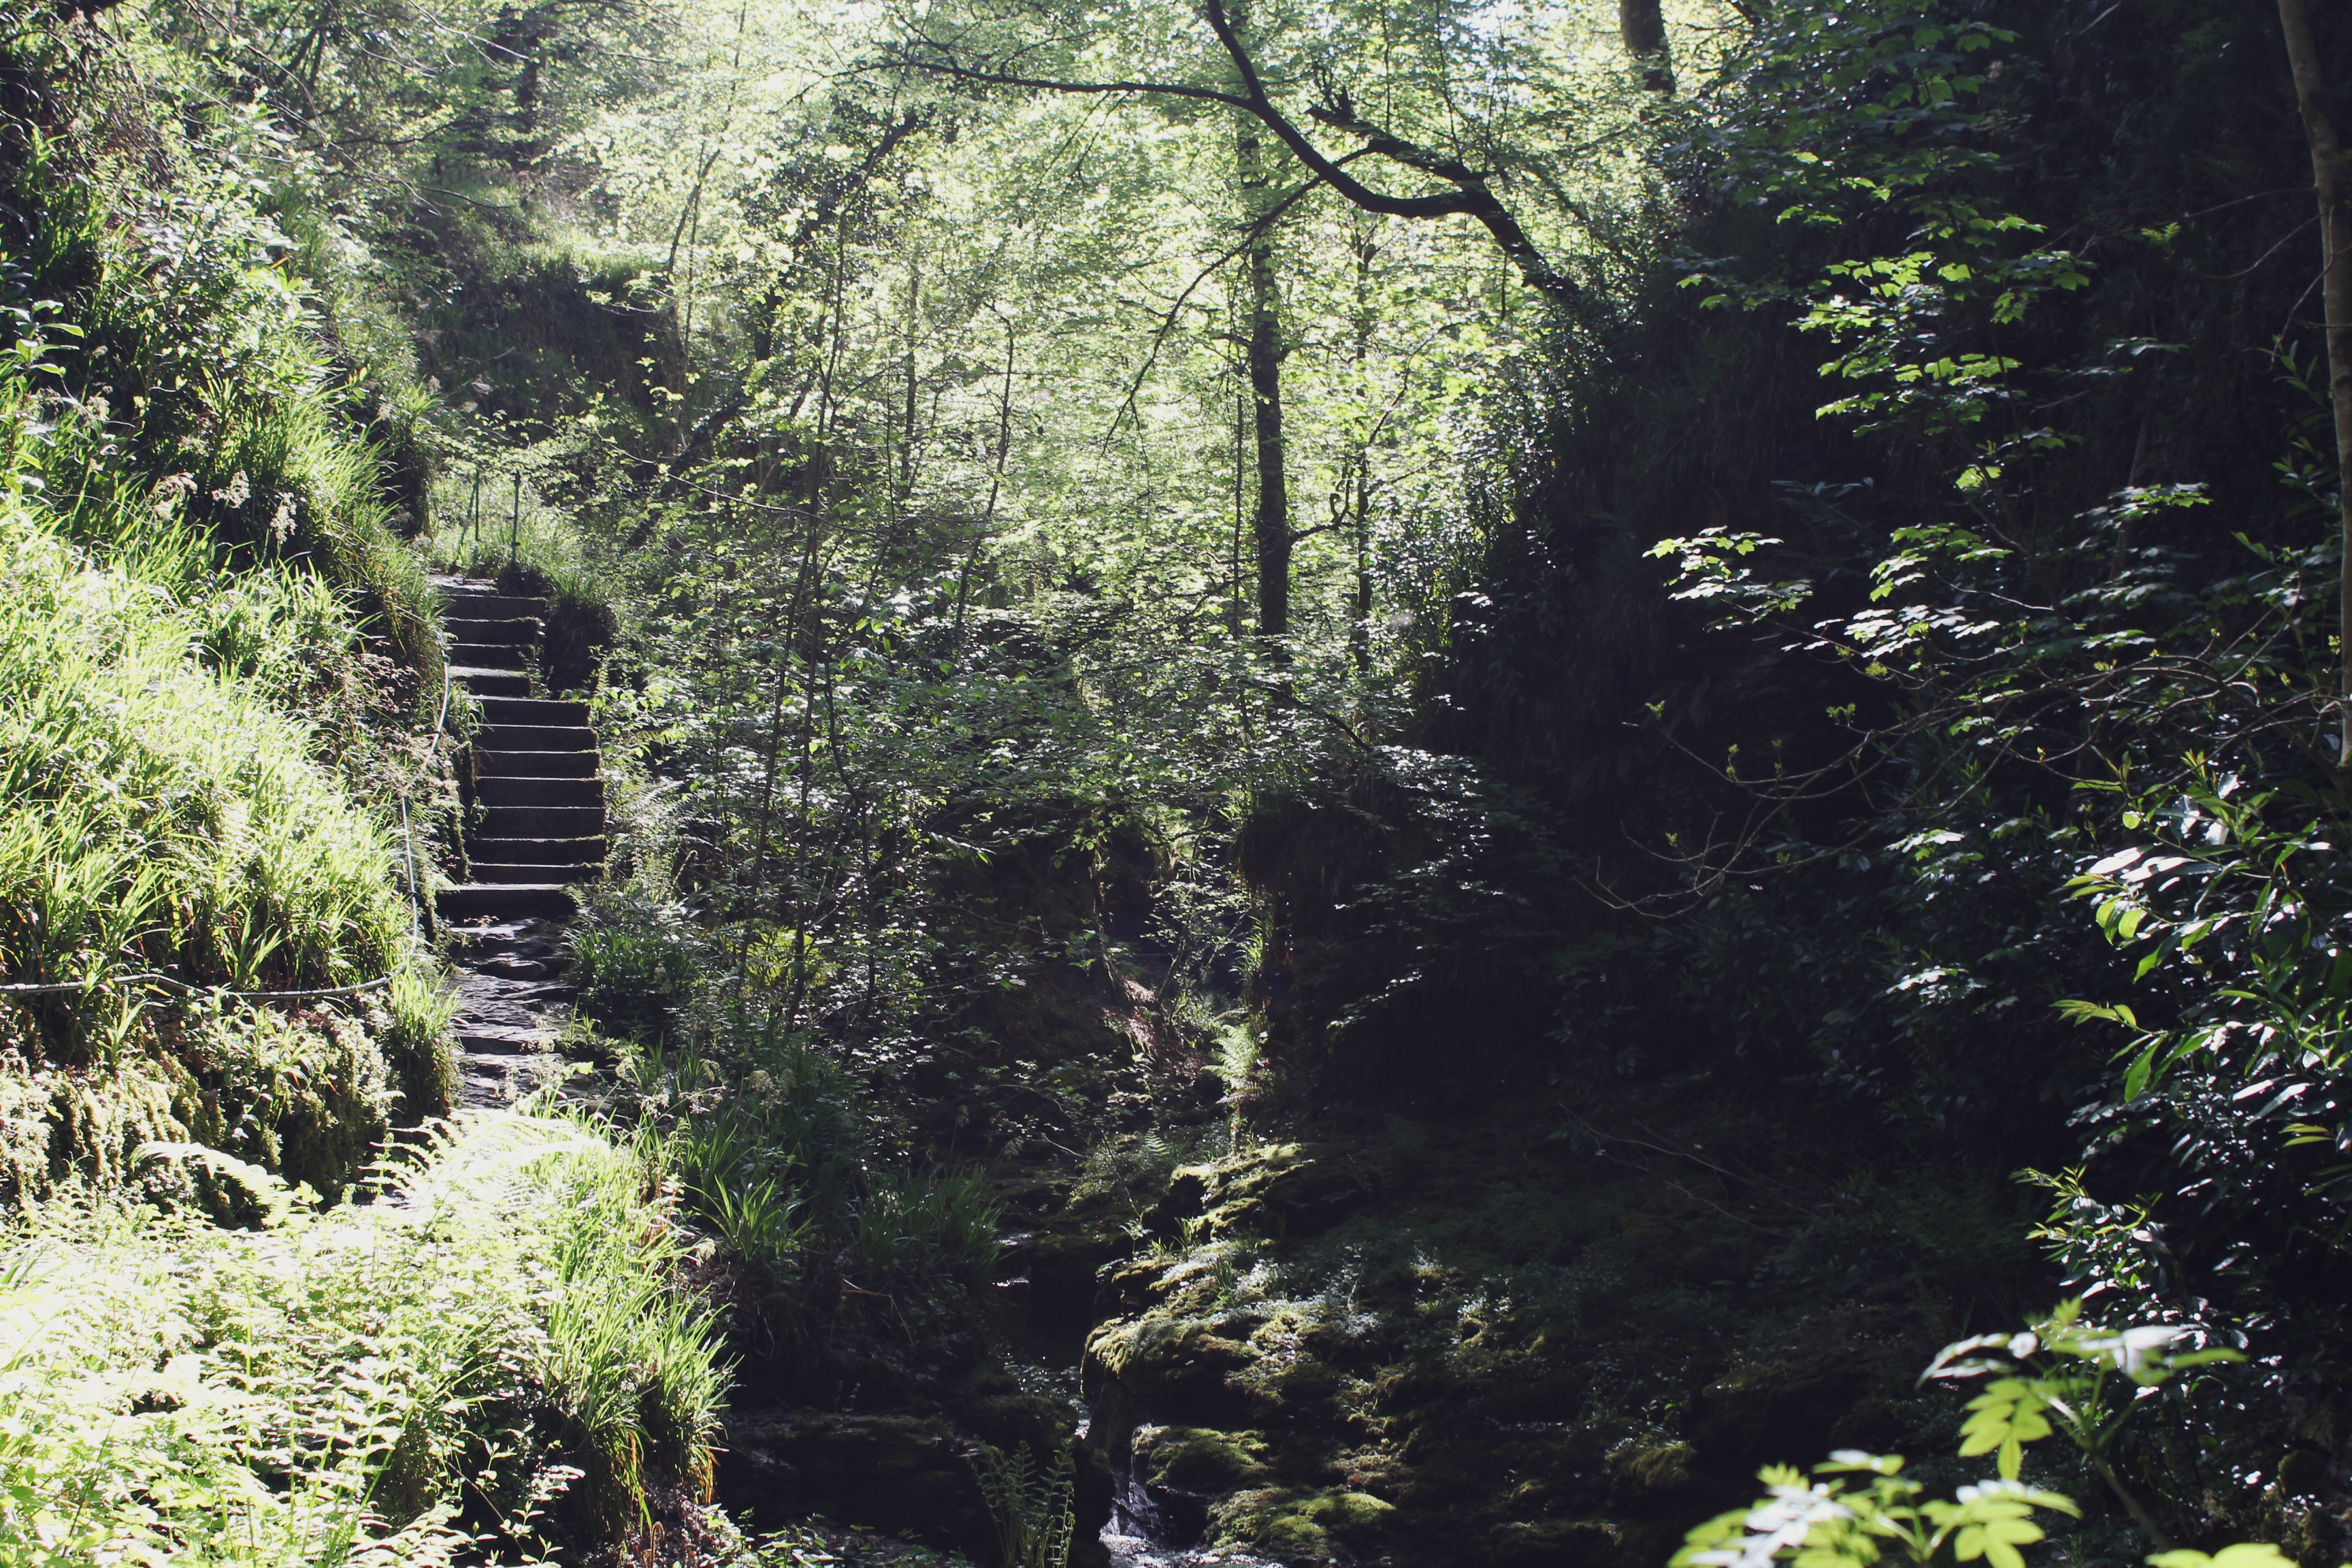 Stairway through the forest at Lydford Gorge, Devon